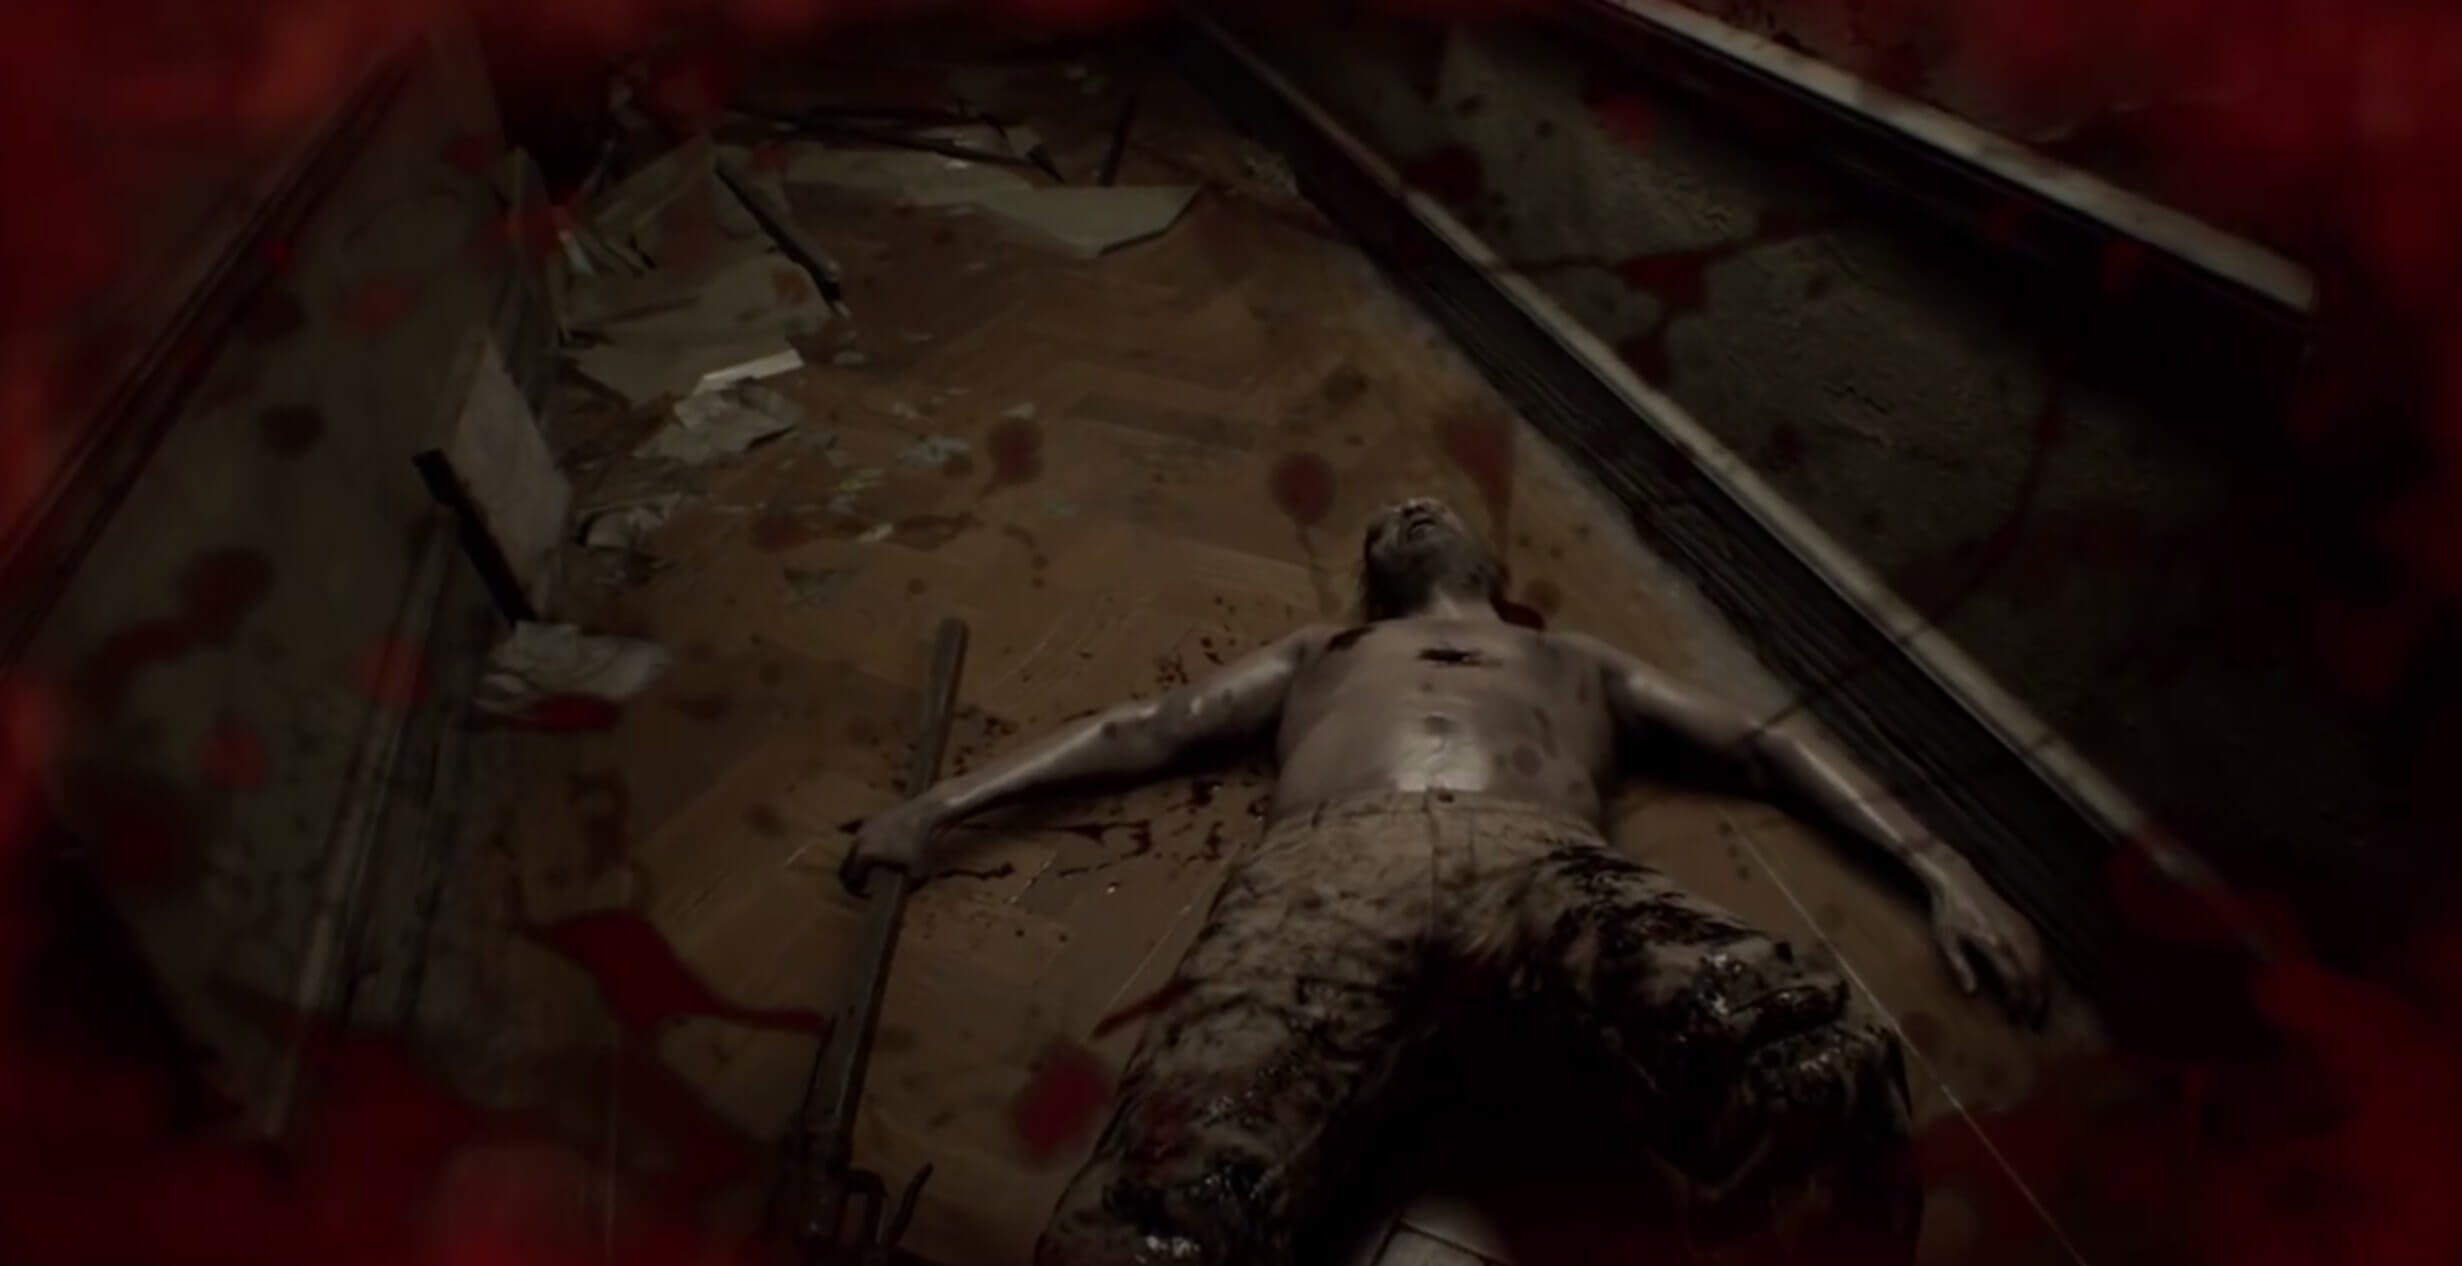 resident evil 7 biohazard how to get to attic